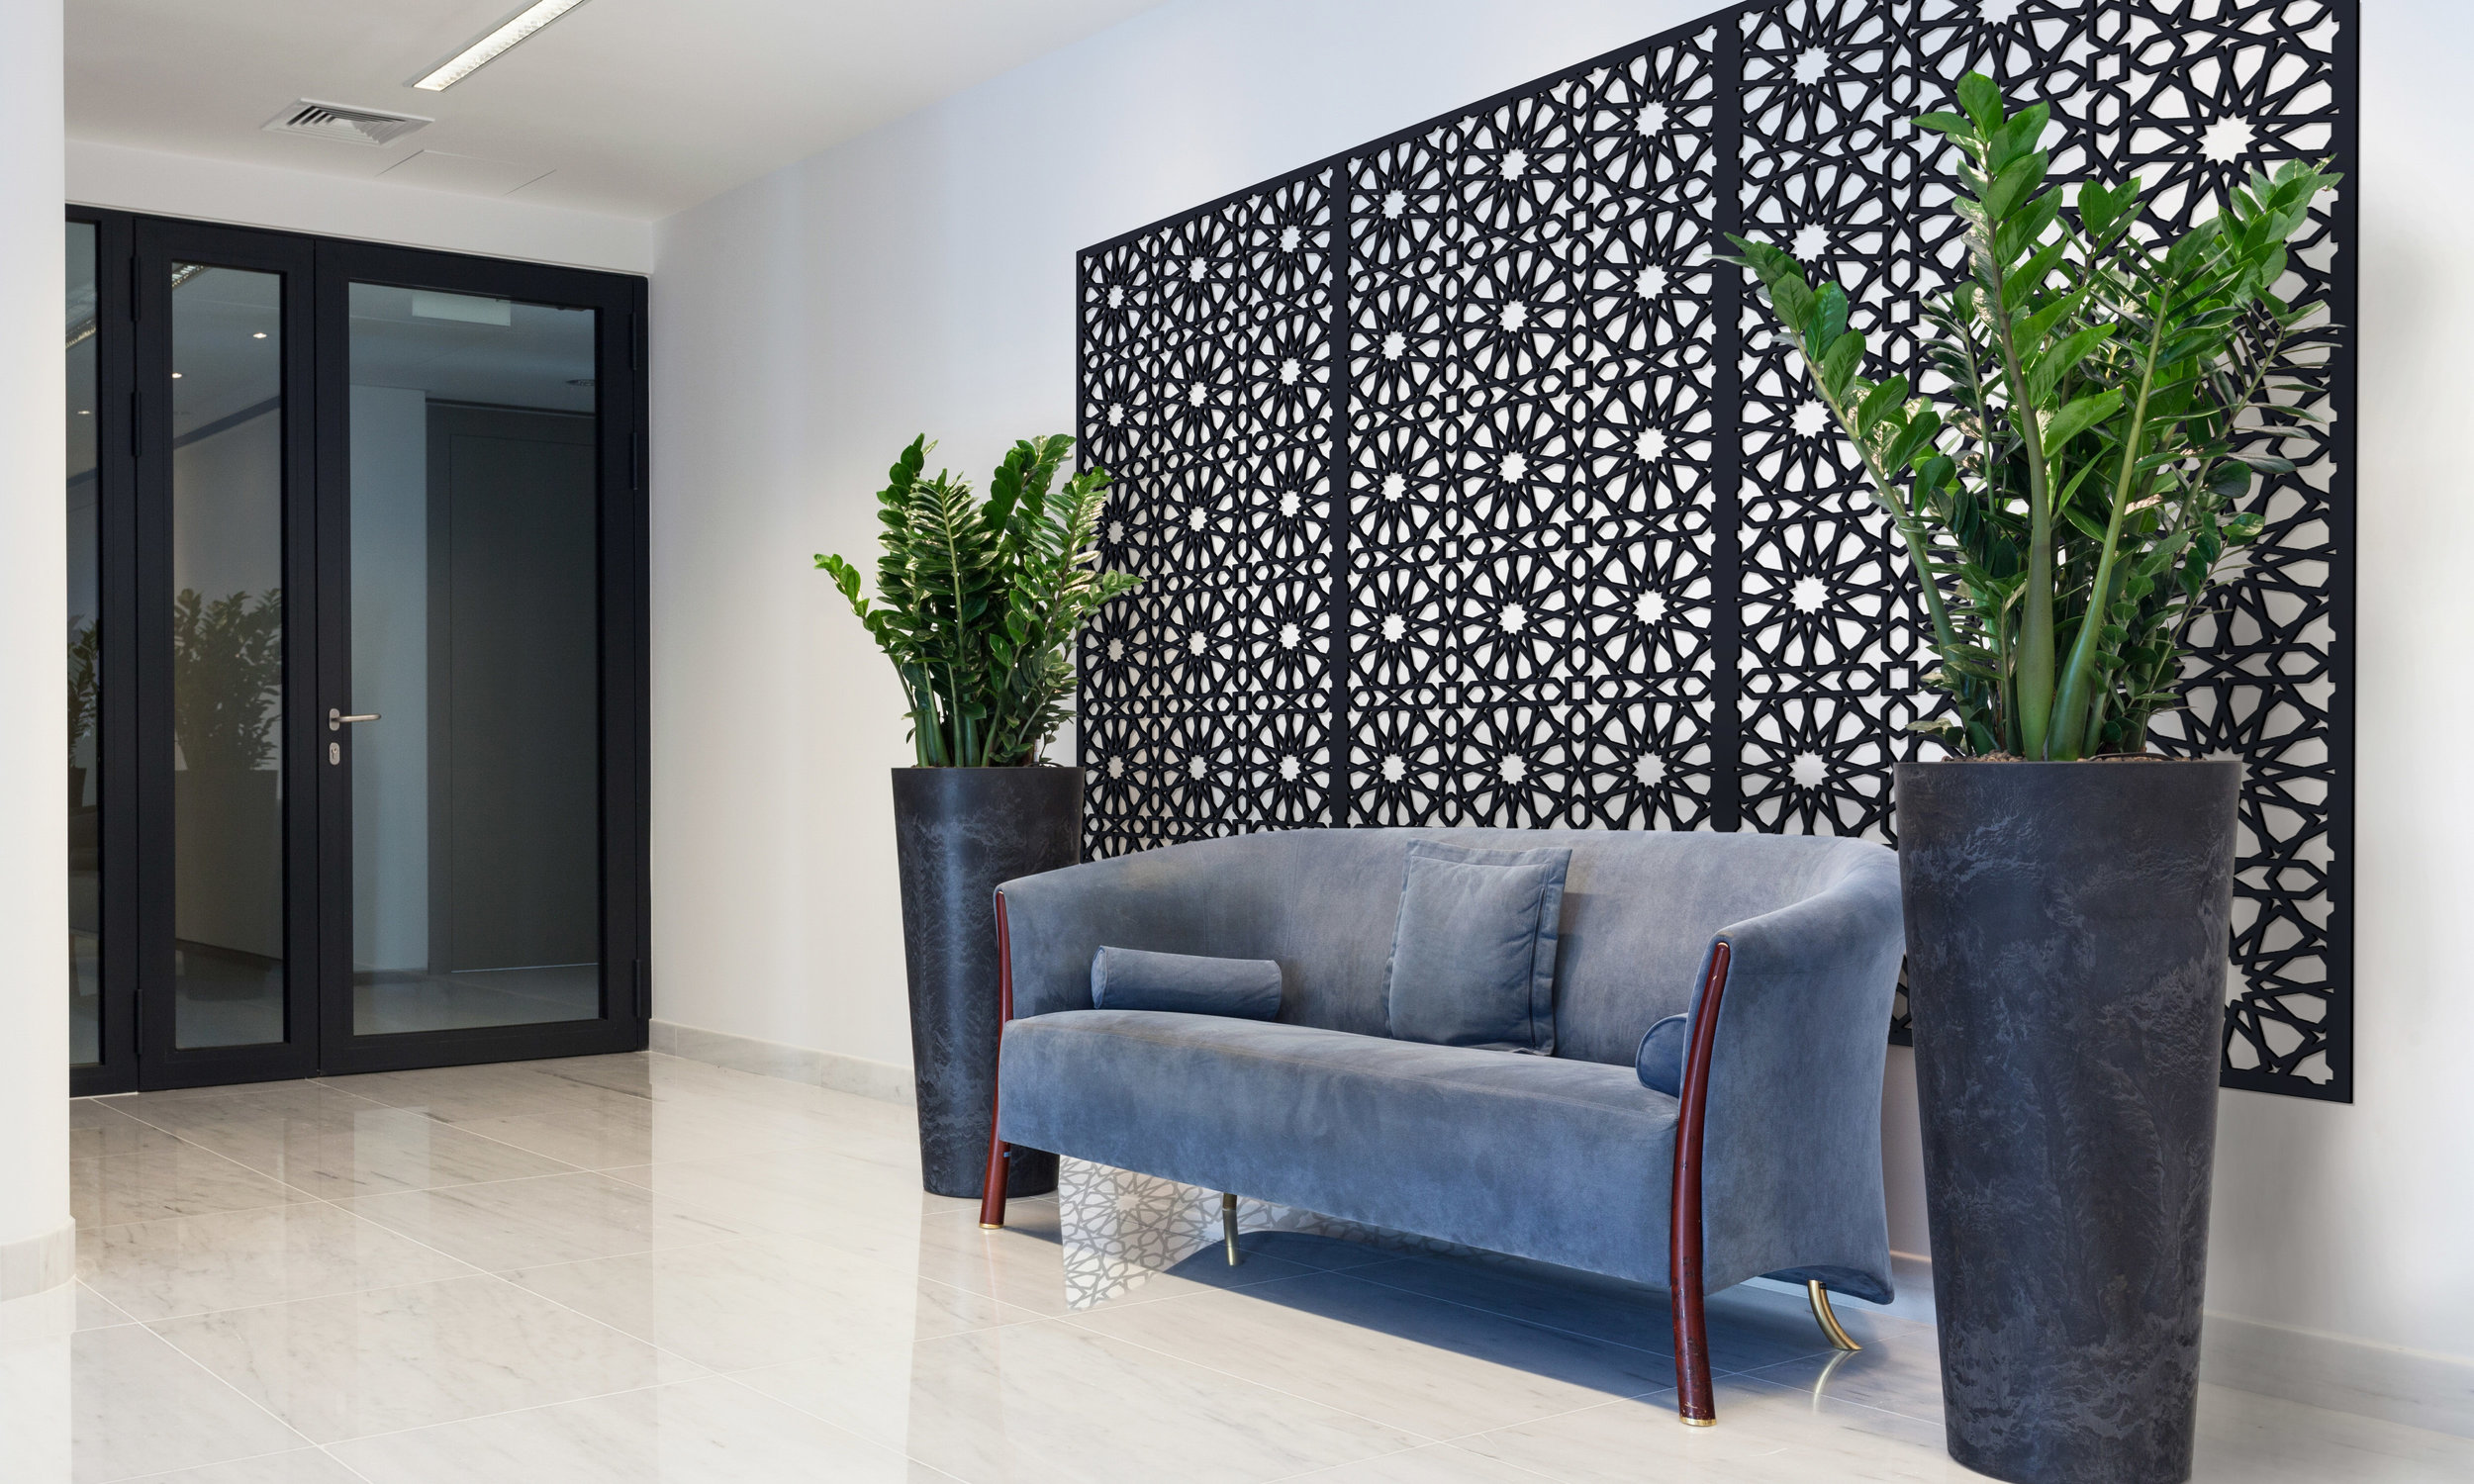 Installation Rendering B   Star Pattern decorative office wall panel - painted